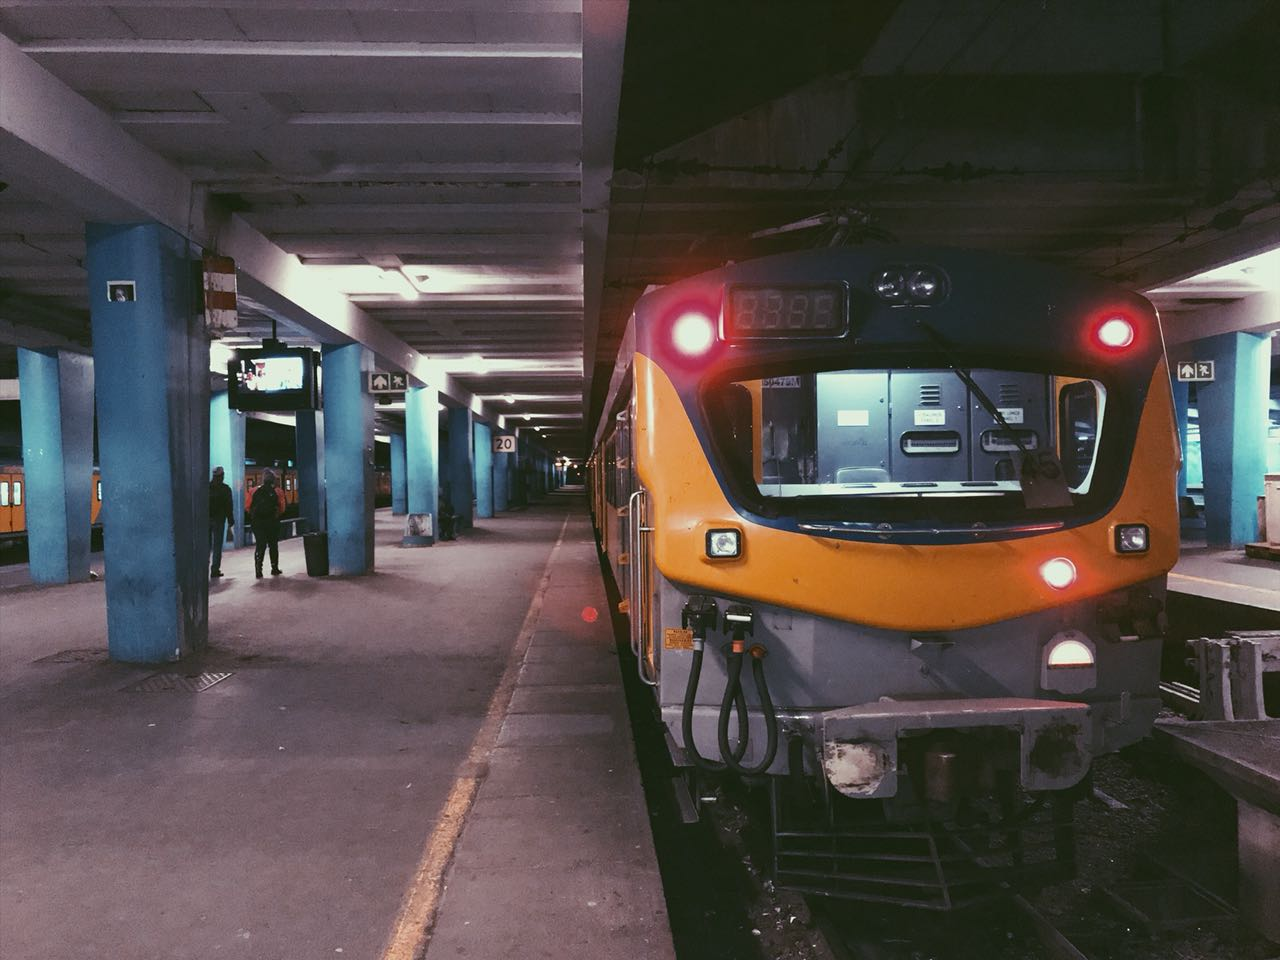 Metrorail train at Station in Cape Town.